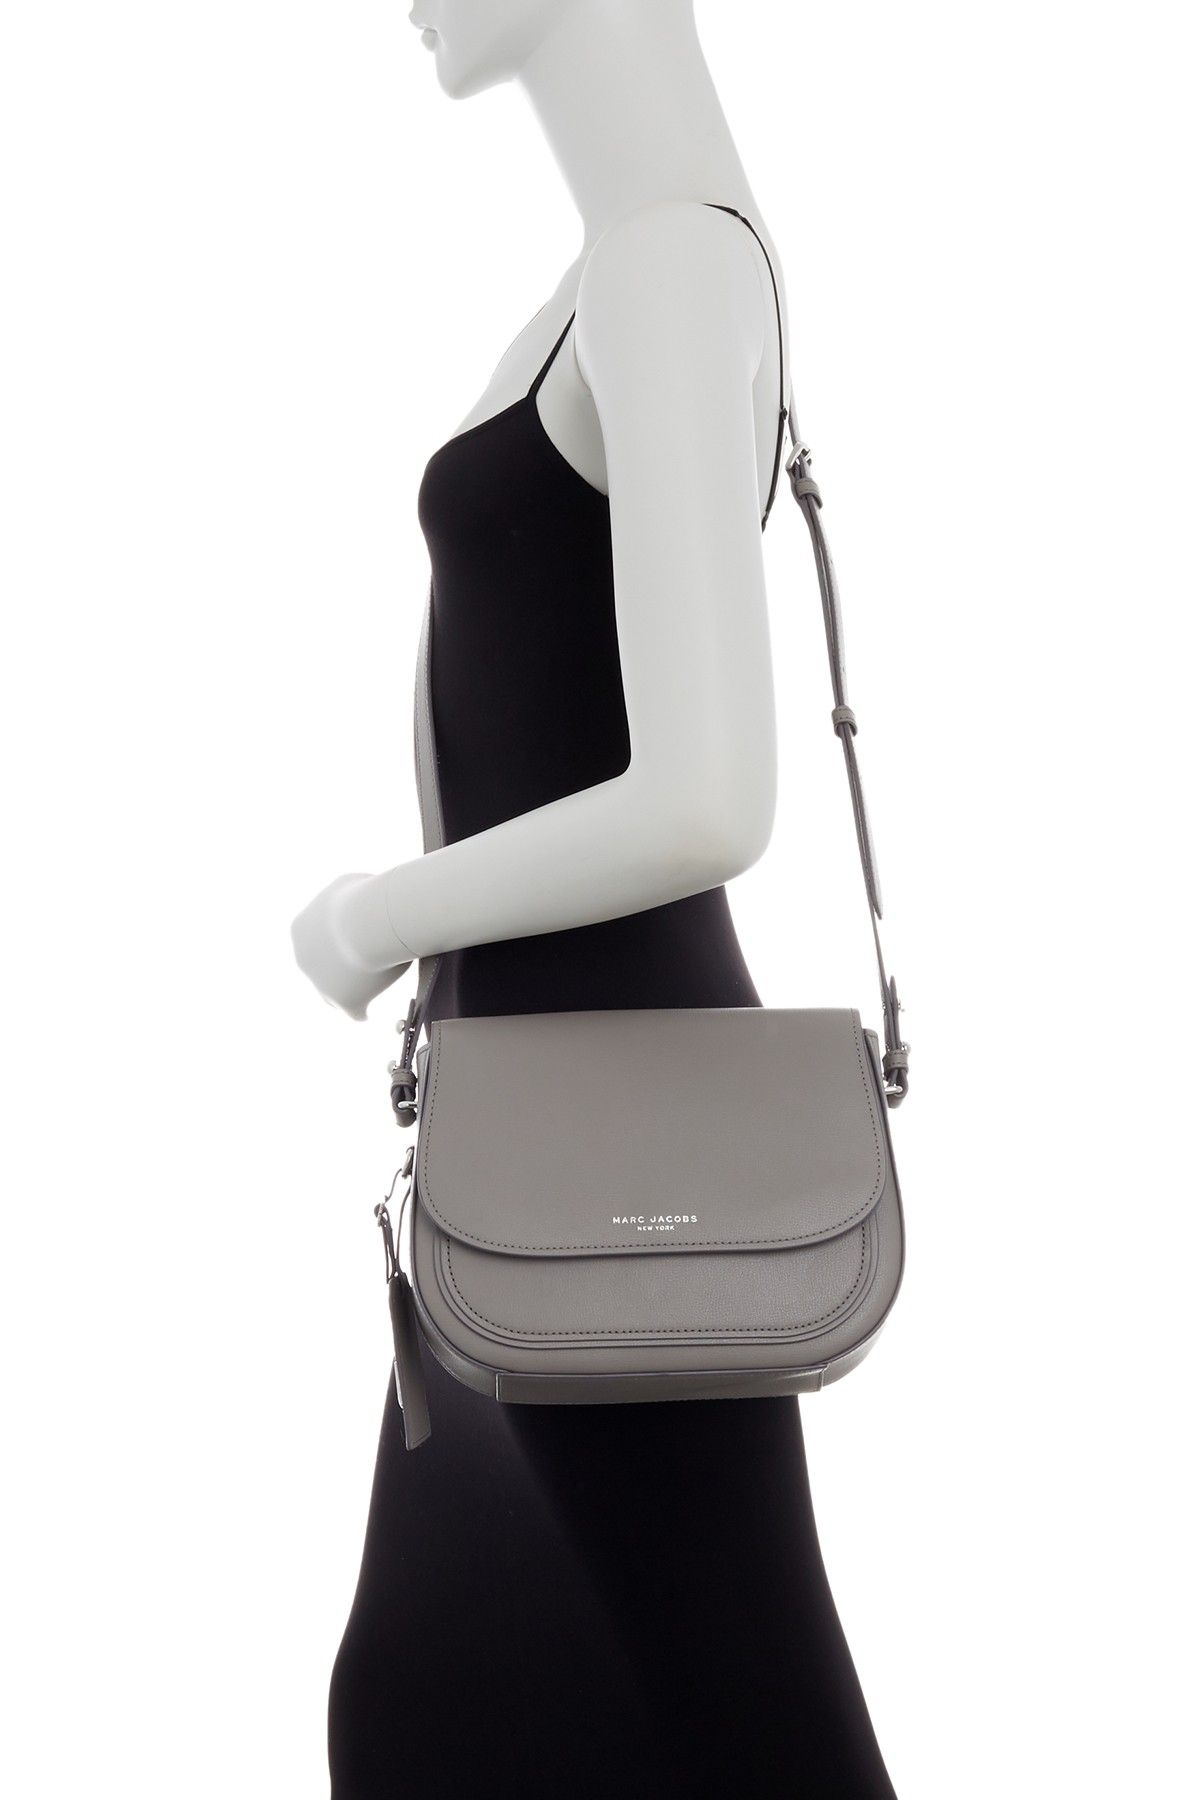 85f5f72b7ed Rider Leather Crossbody Bag by Marc Jacobs on  nordstrom rack   I ...